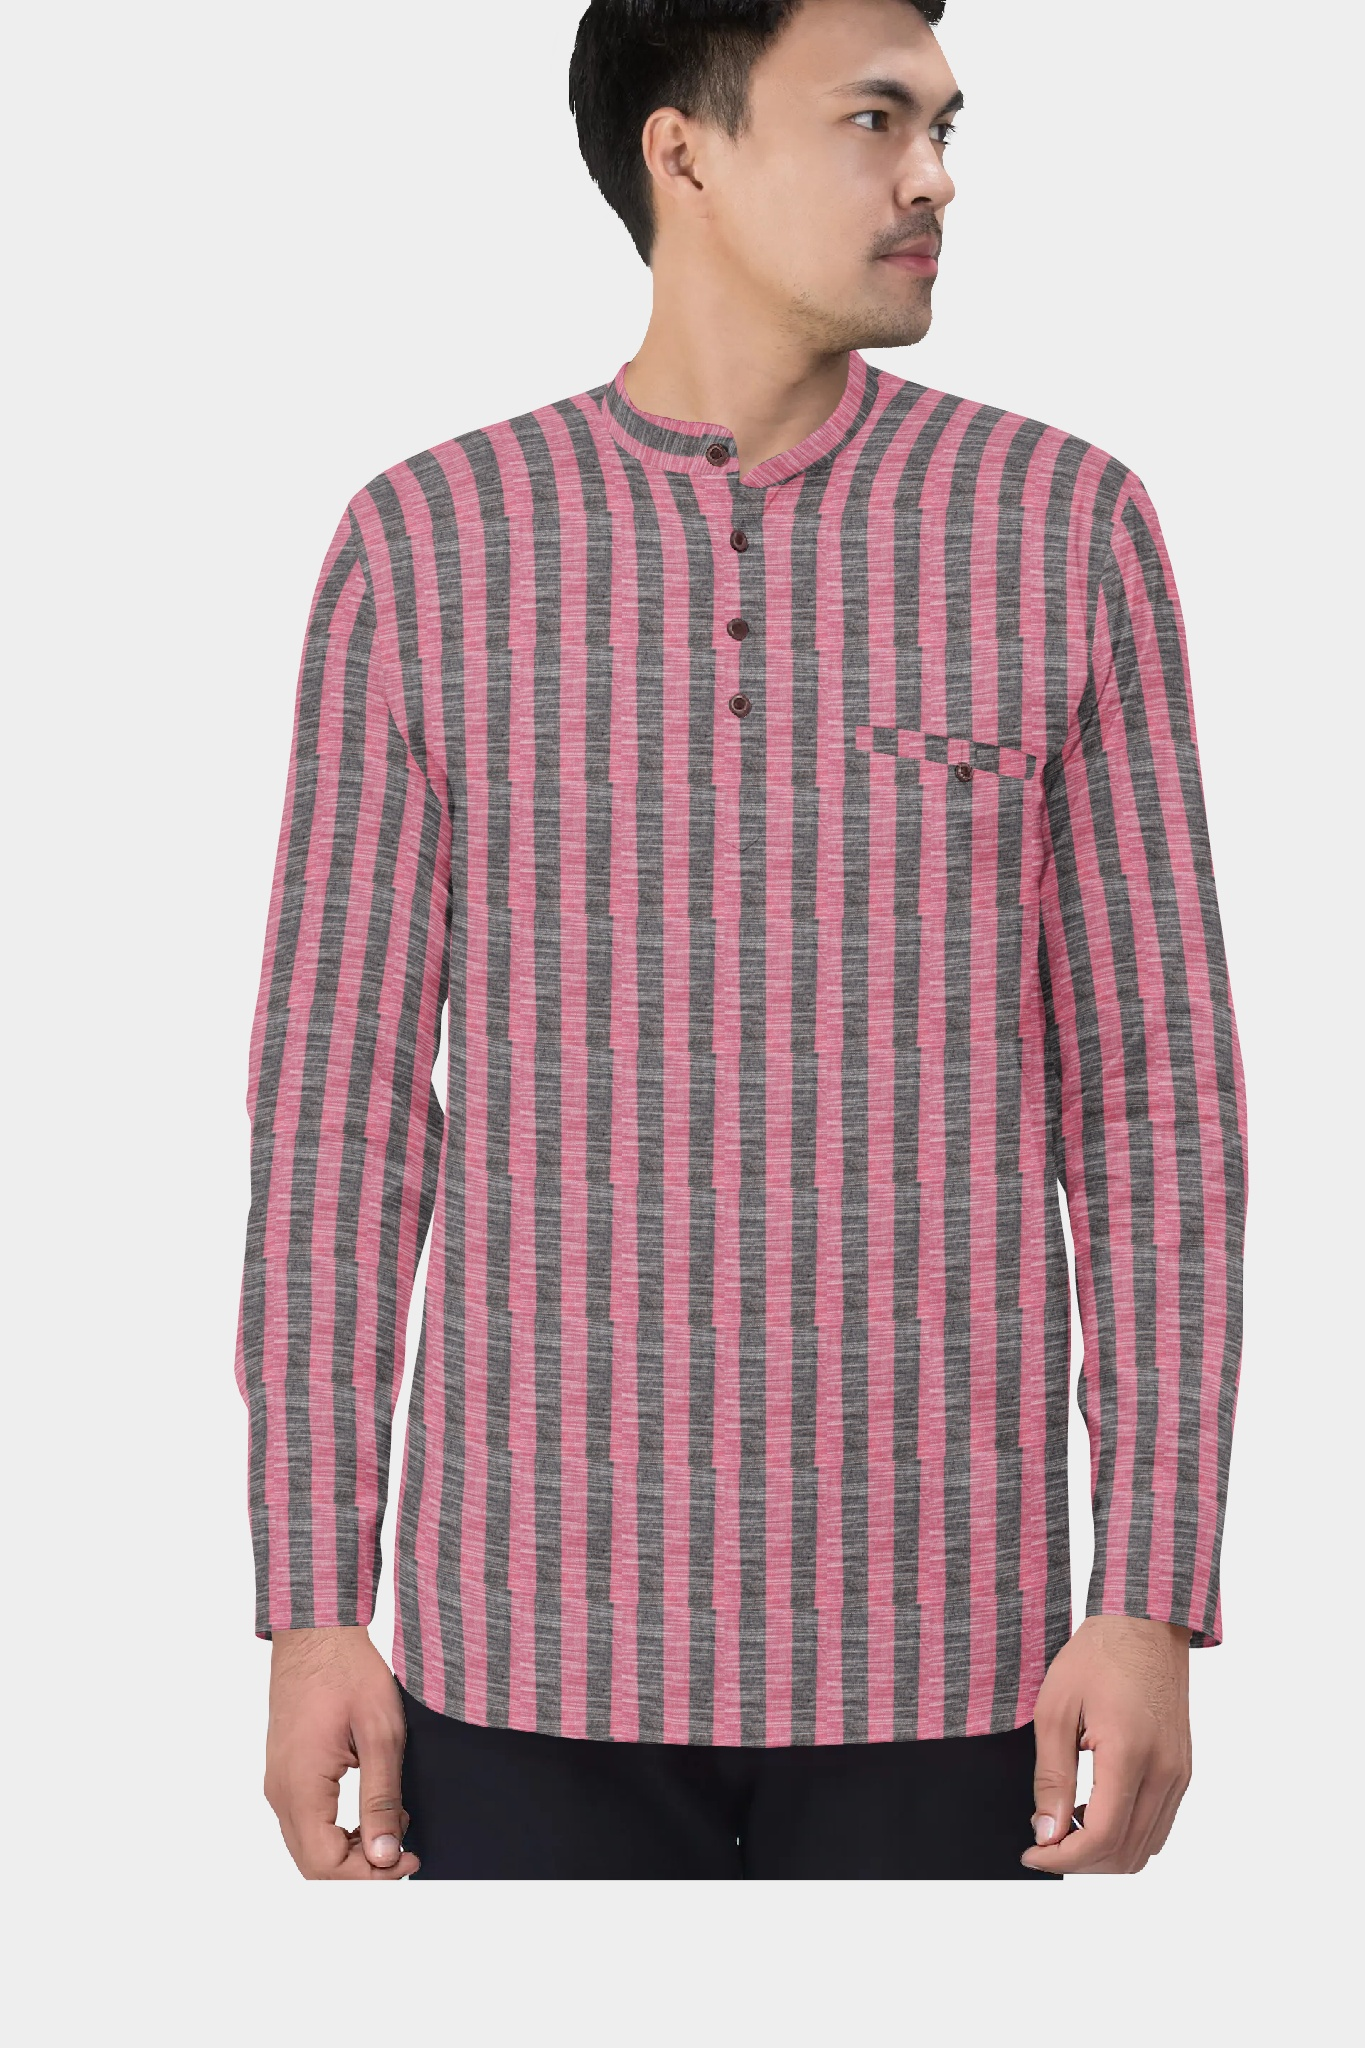 /home/customer/www/fabartcraft.com/public_html/uploadshttps://www.shopolics.com/uploads/images/medium/Pink-Gray-Cotton-Short-Kurta-35445.jpg